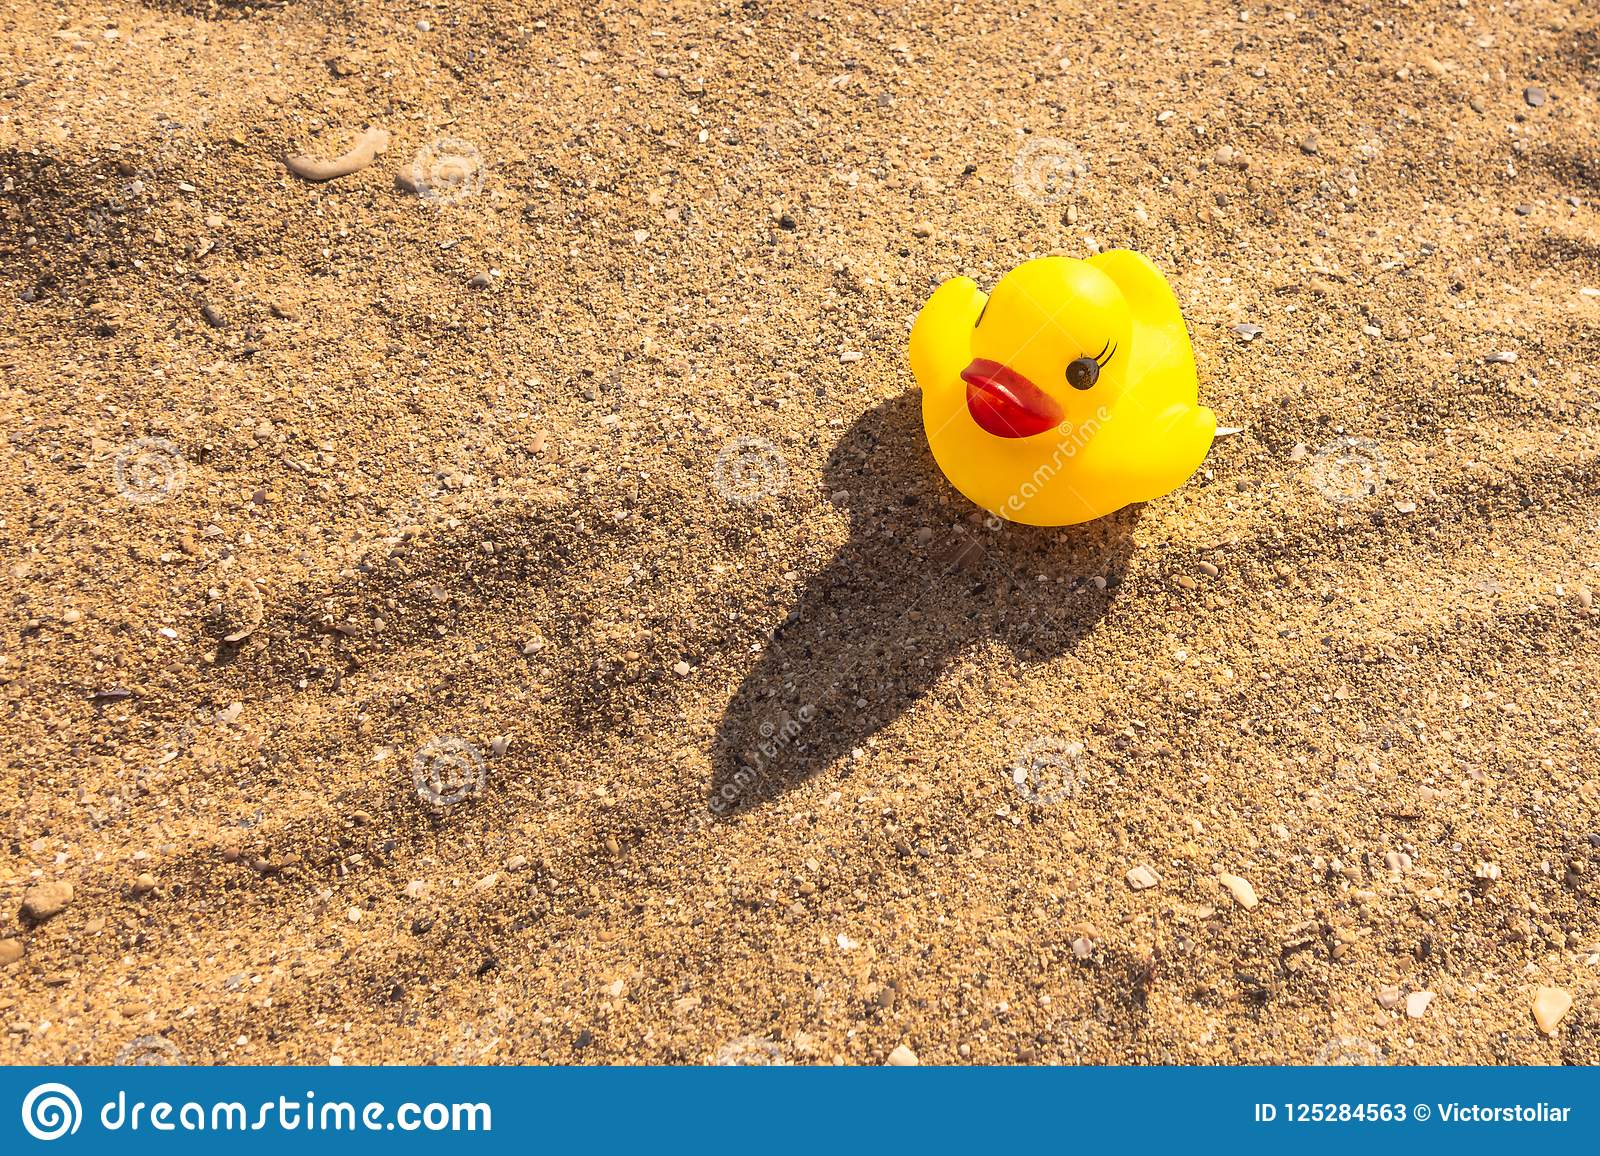 Rubber Toy Duck. Rubber Yellow Duckling Is Sitting On The Beach In A ...